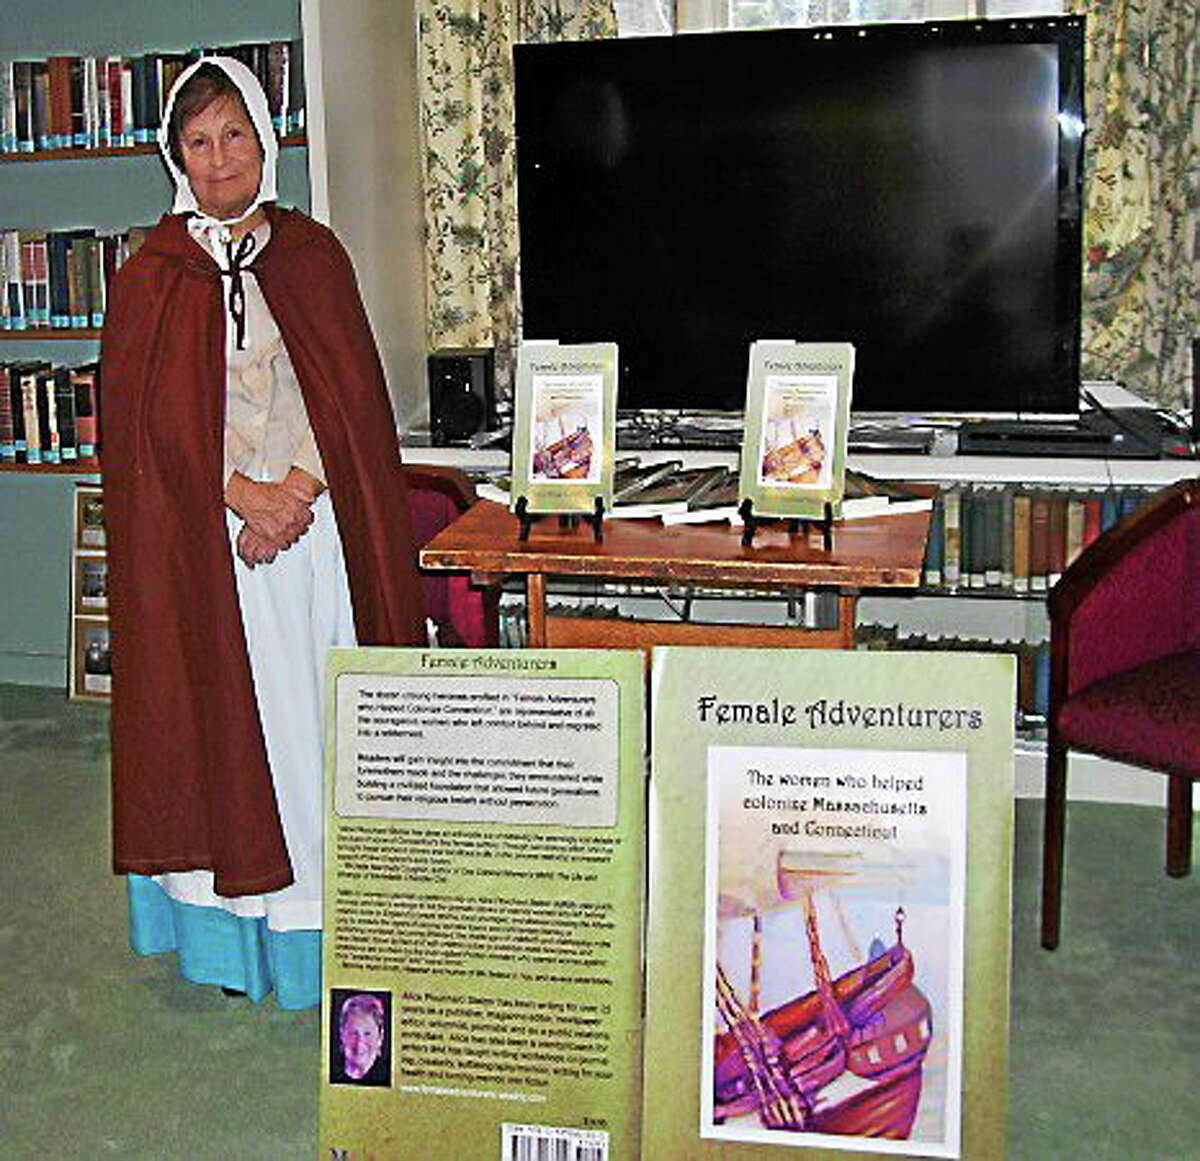 Alice Plouchard Stelzer, the author of Female Adventurers, takes on the character of Mehetable to teach the community about the lives of 17th-century Puritan women.